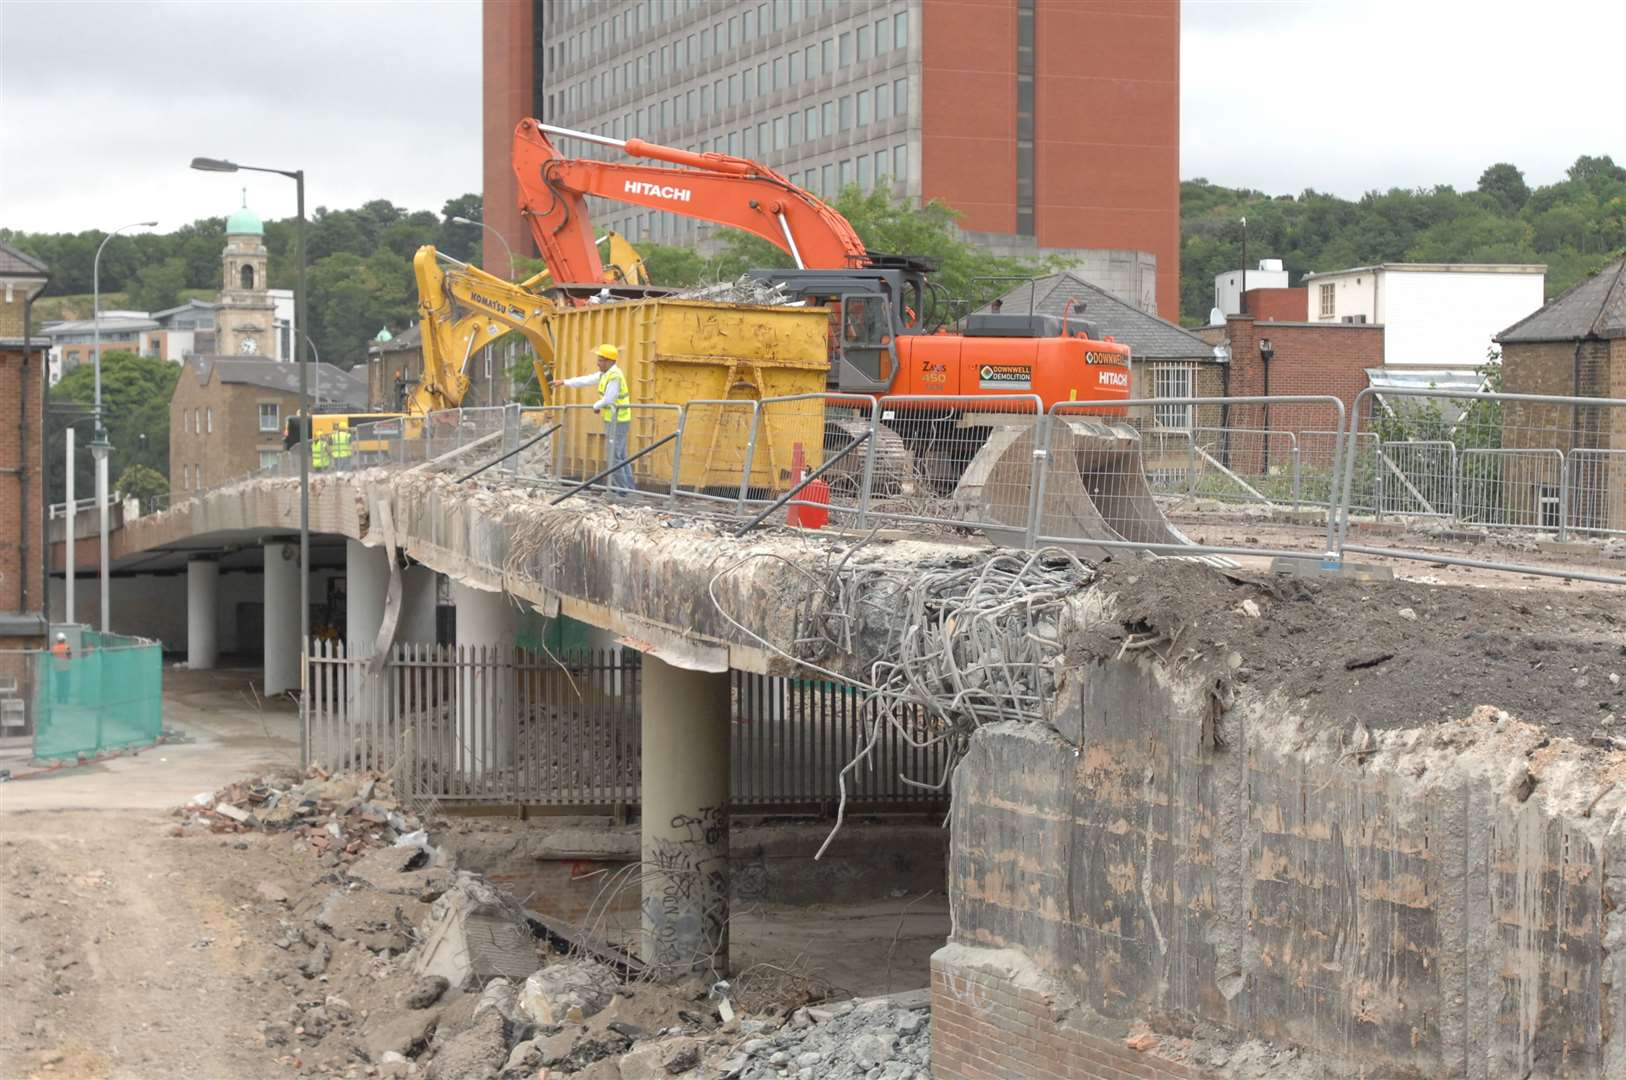 Demolition work on the Sir John Hawkins Flyover in July 2009